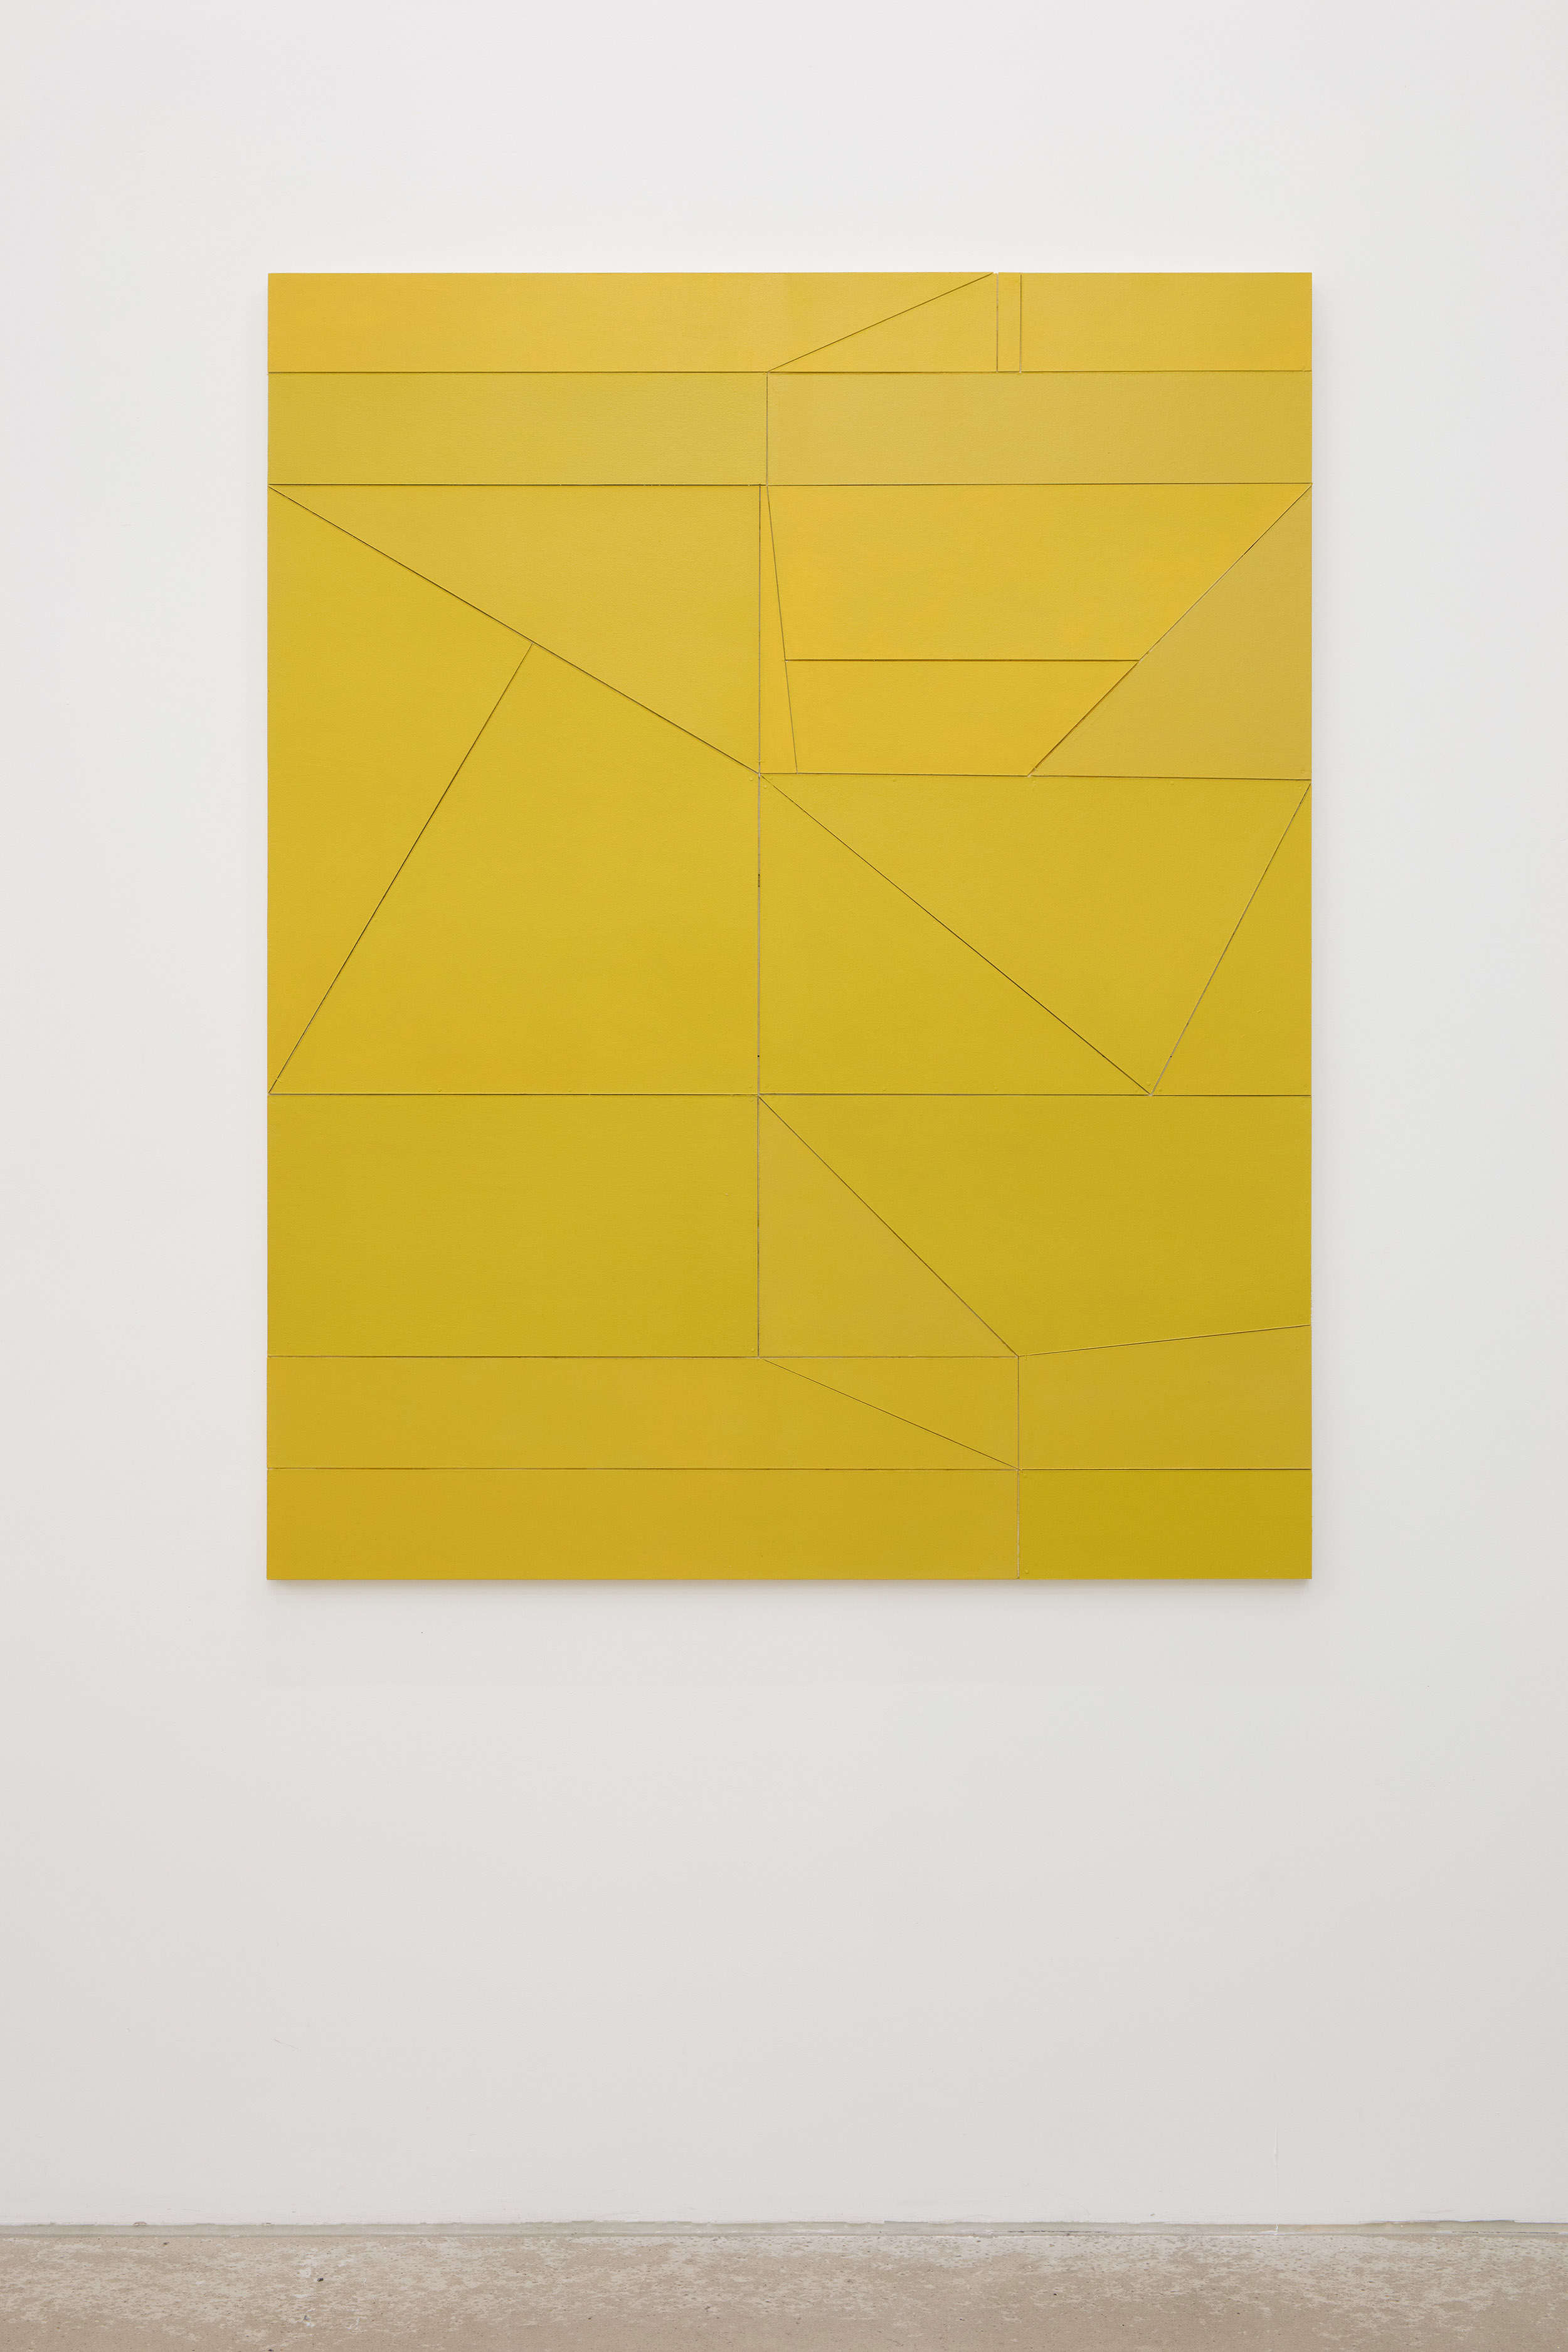 6 - Florian Schmit at Daniel Marzona Berlin - suggested by Ivan Seal